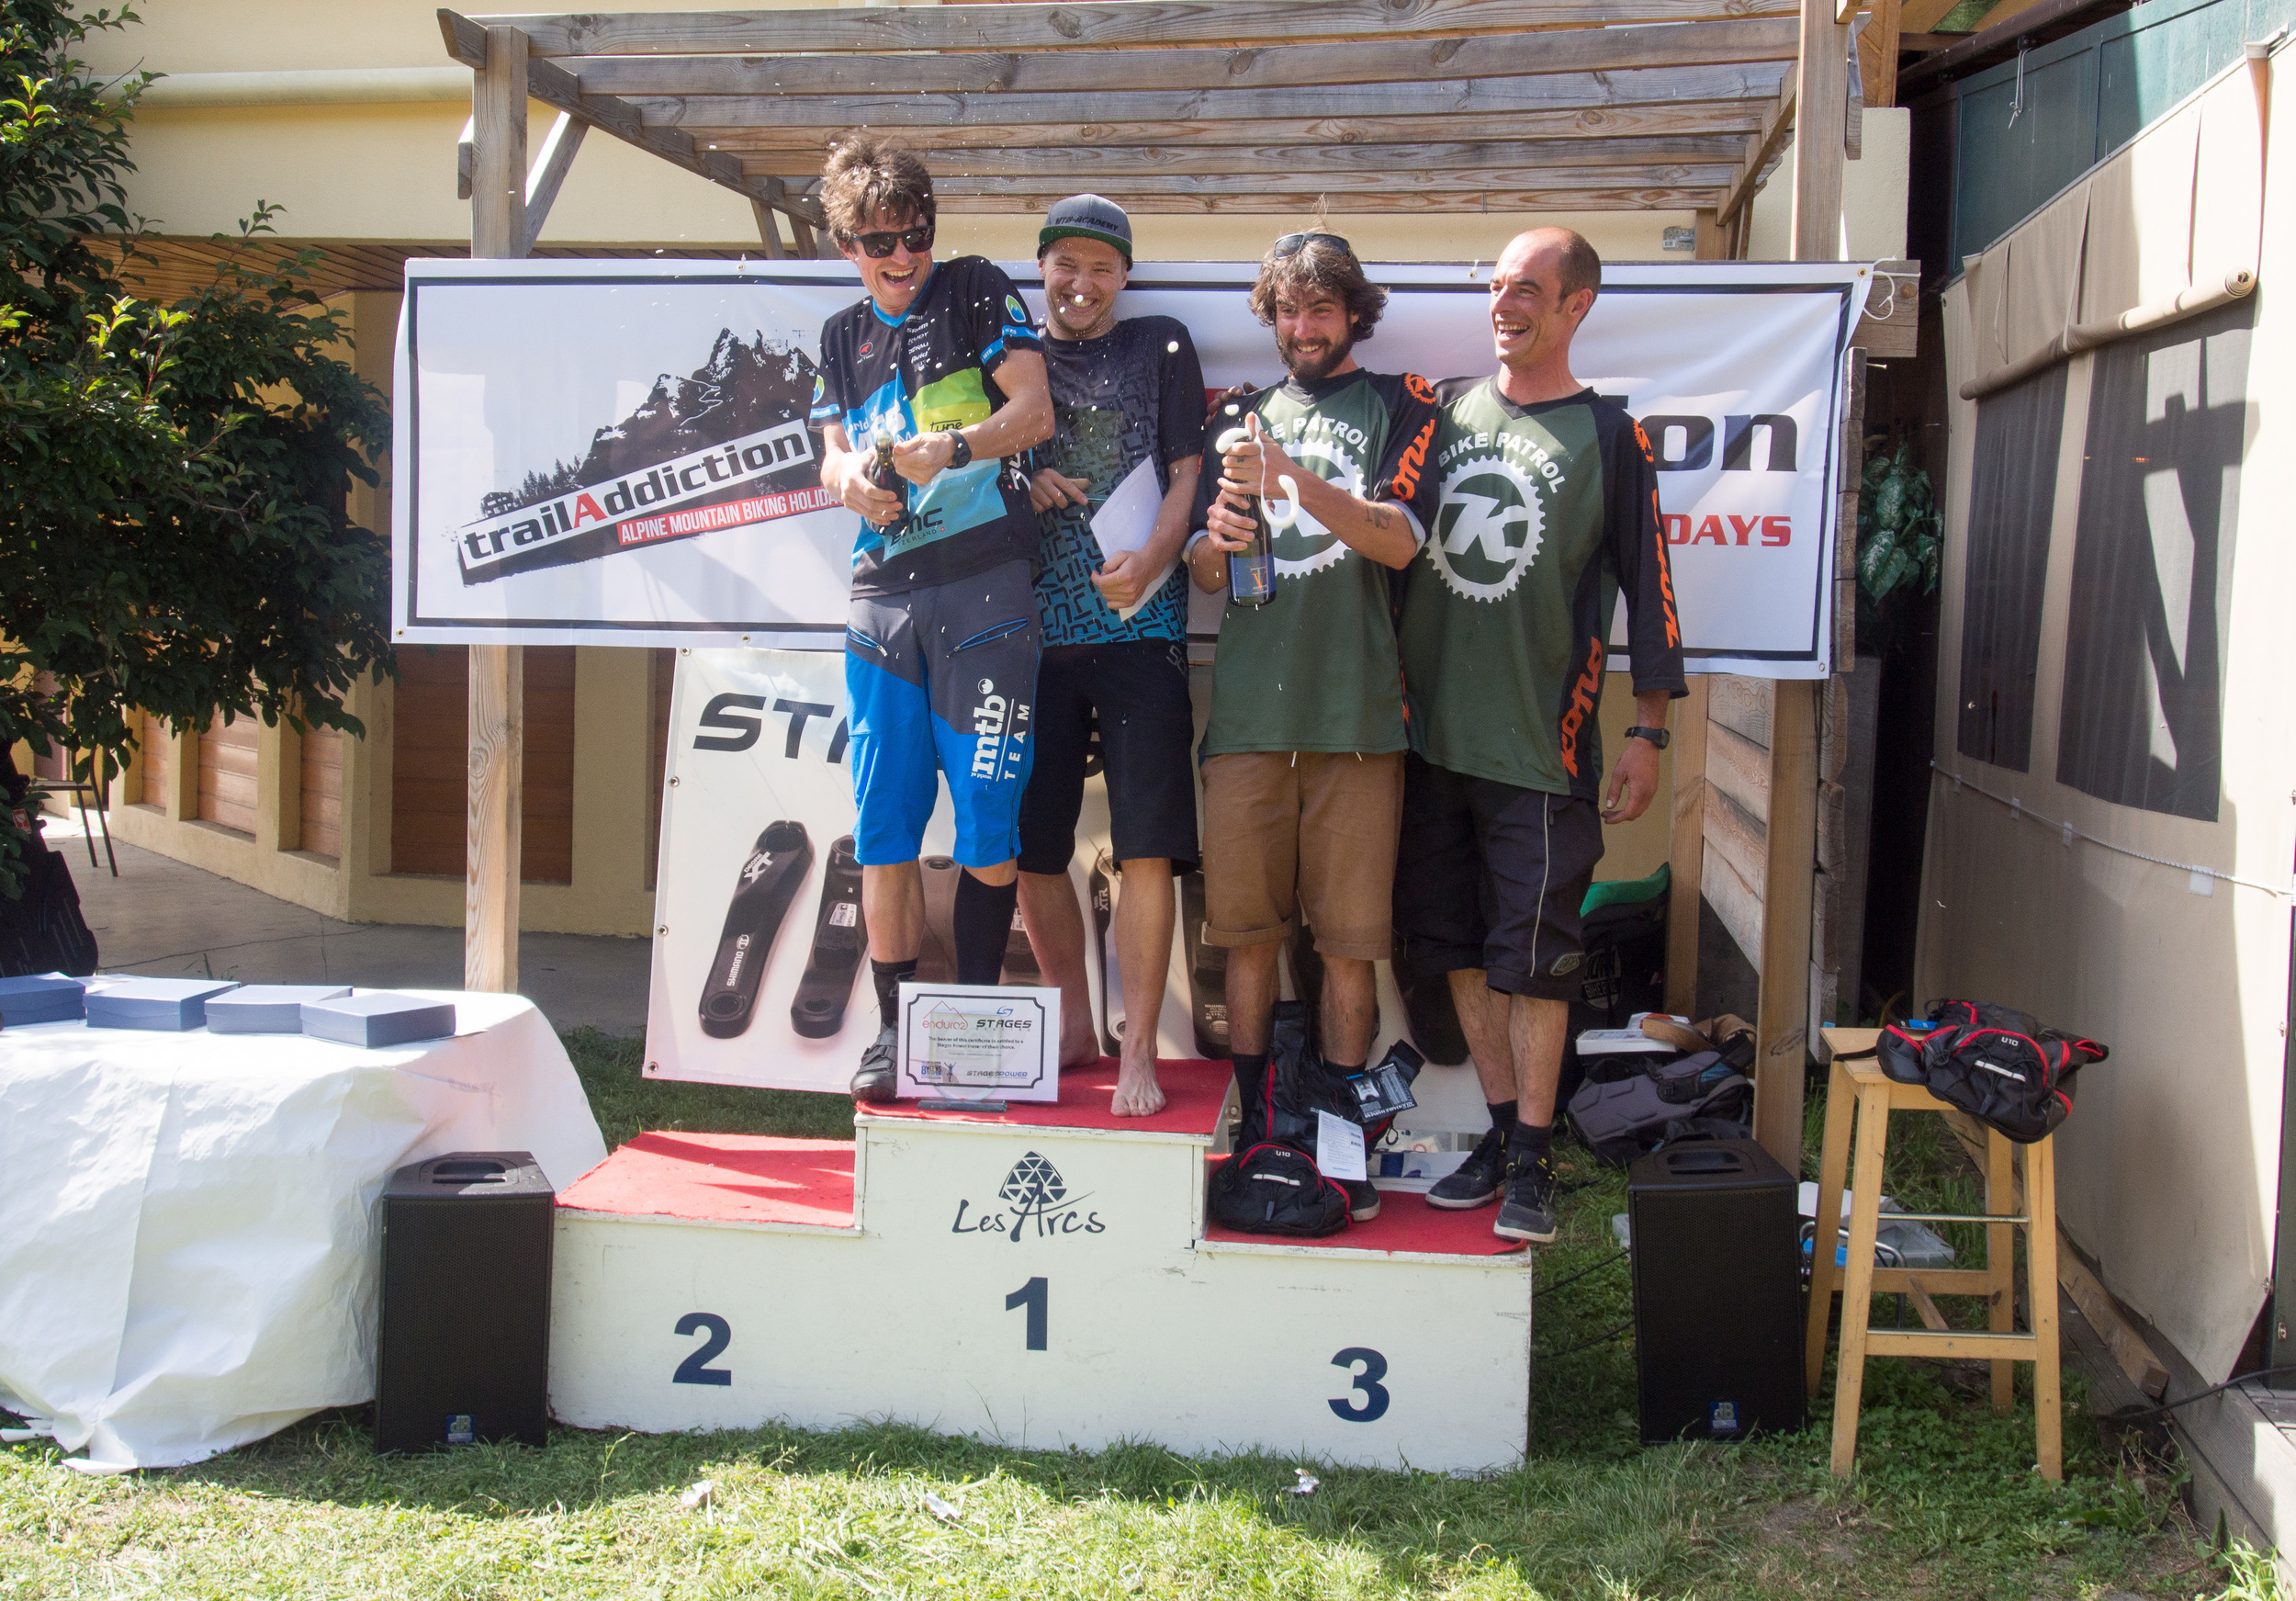 Mens podium. 1st - World of MTB, 2nd - 5 a day (already flying home when prizegiving started), 3rd - ADS